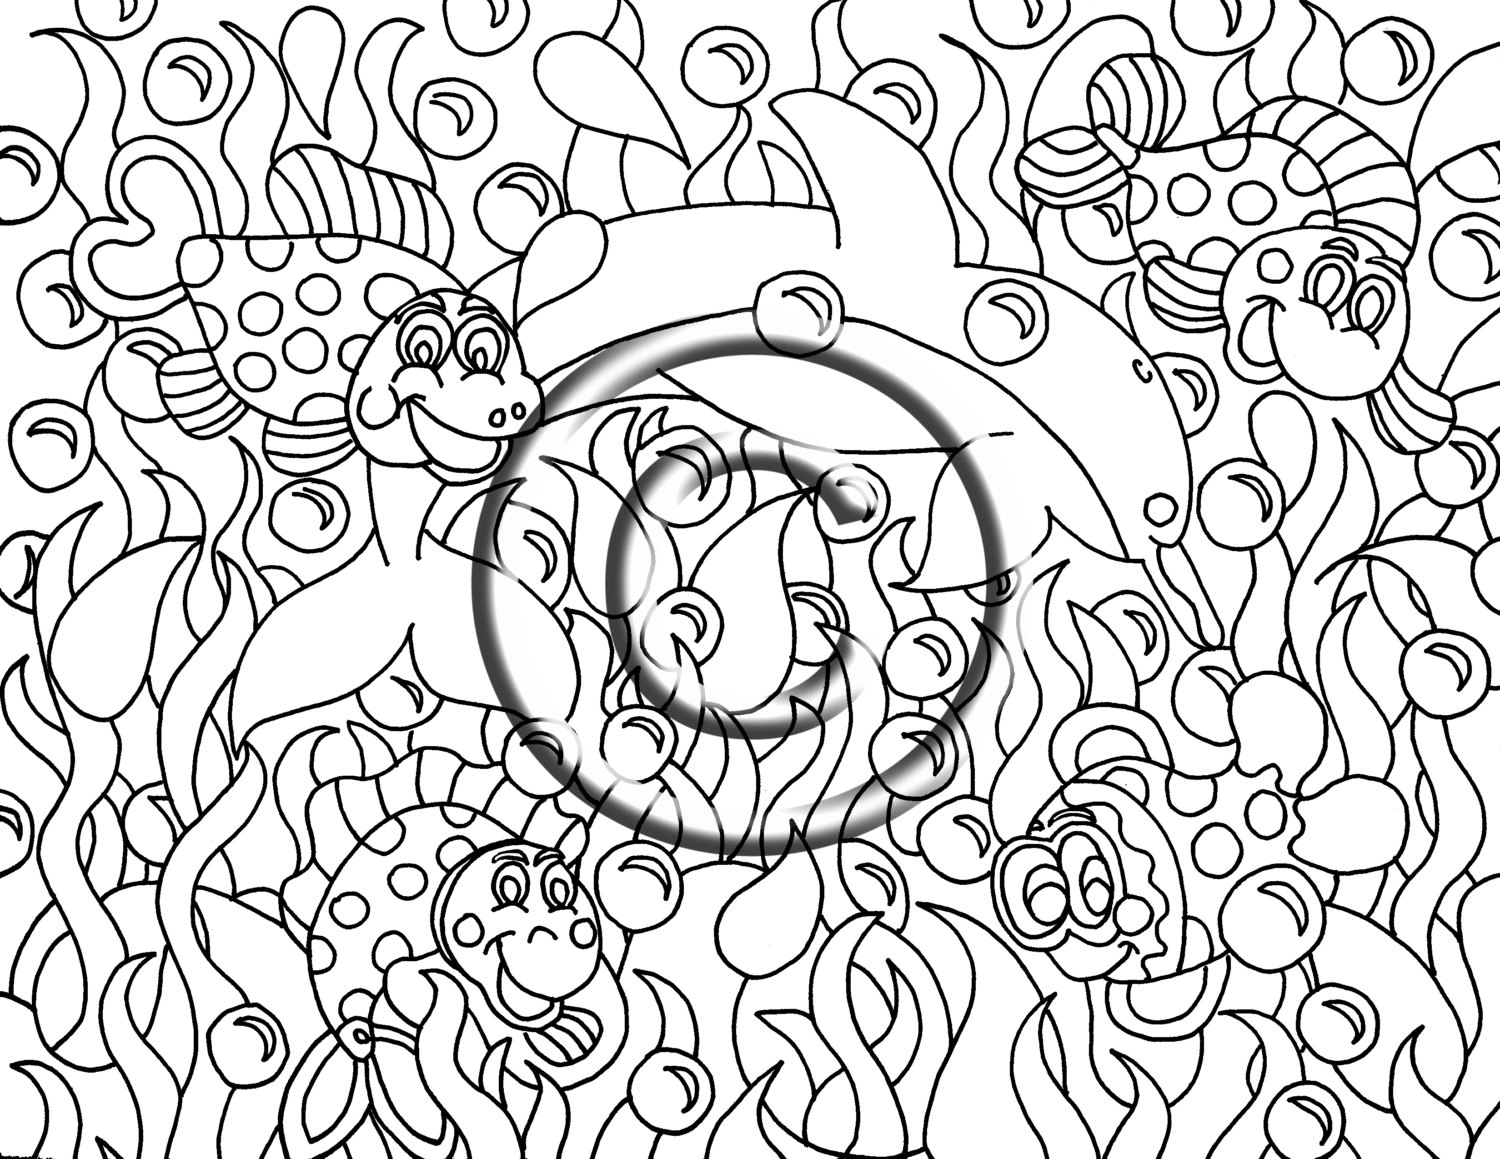 trippy coloring pages printable free printable trippy coloring pages free printable printable pages trippy coloring